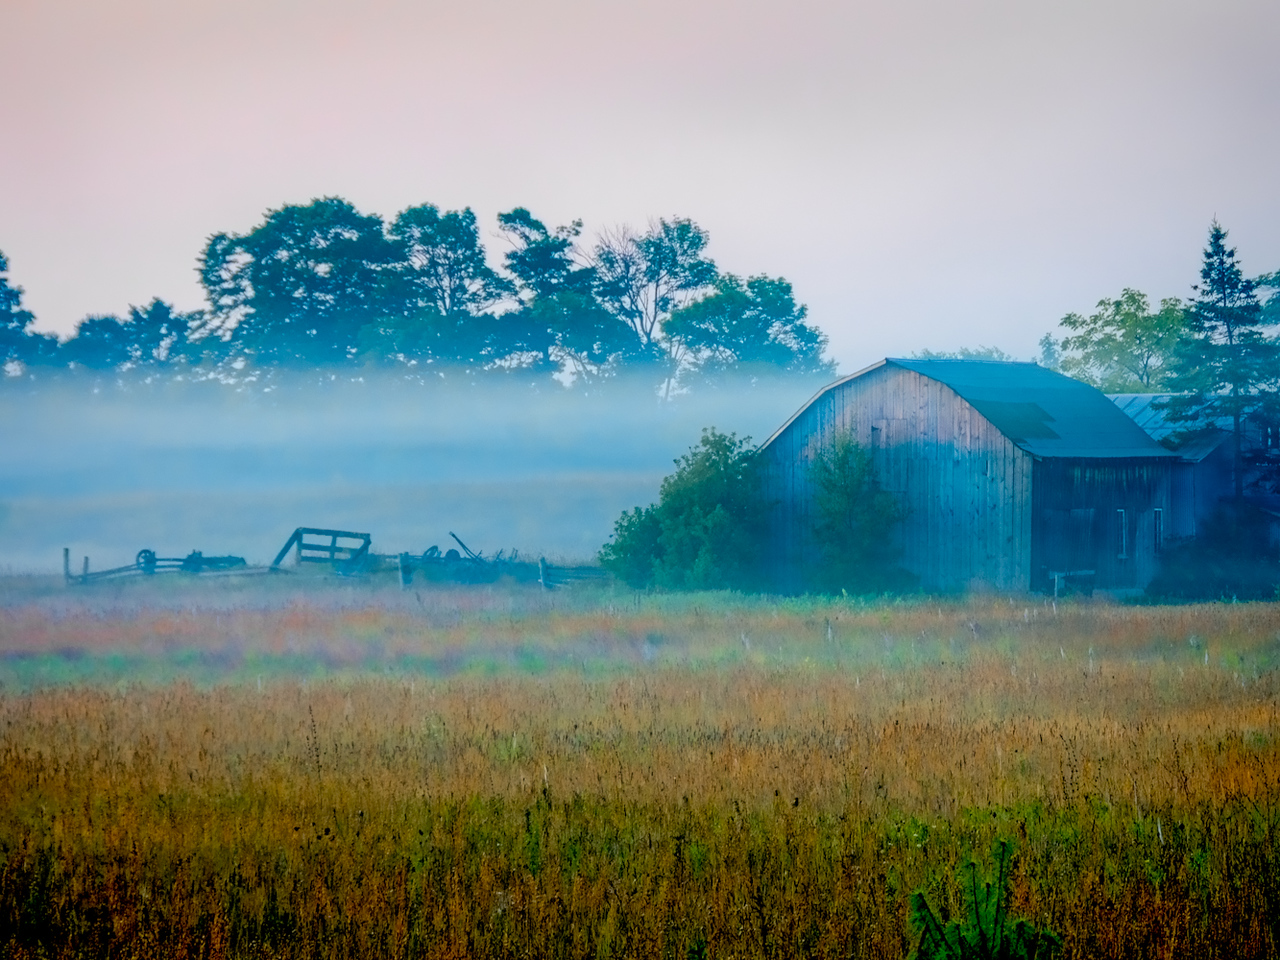 Misty Morning On The Farm